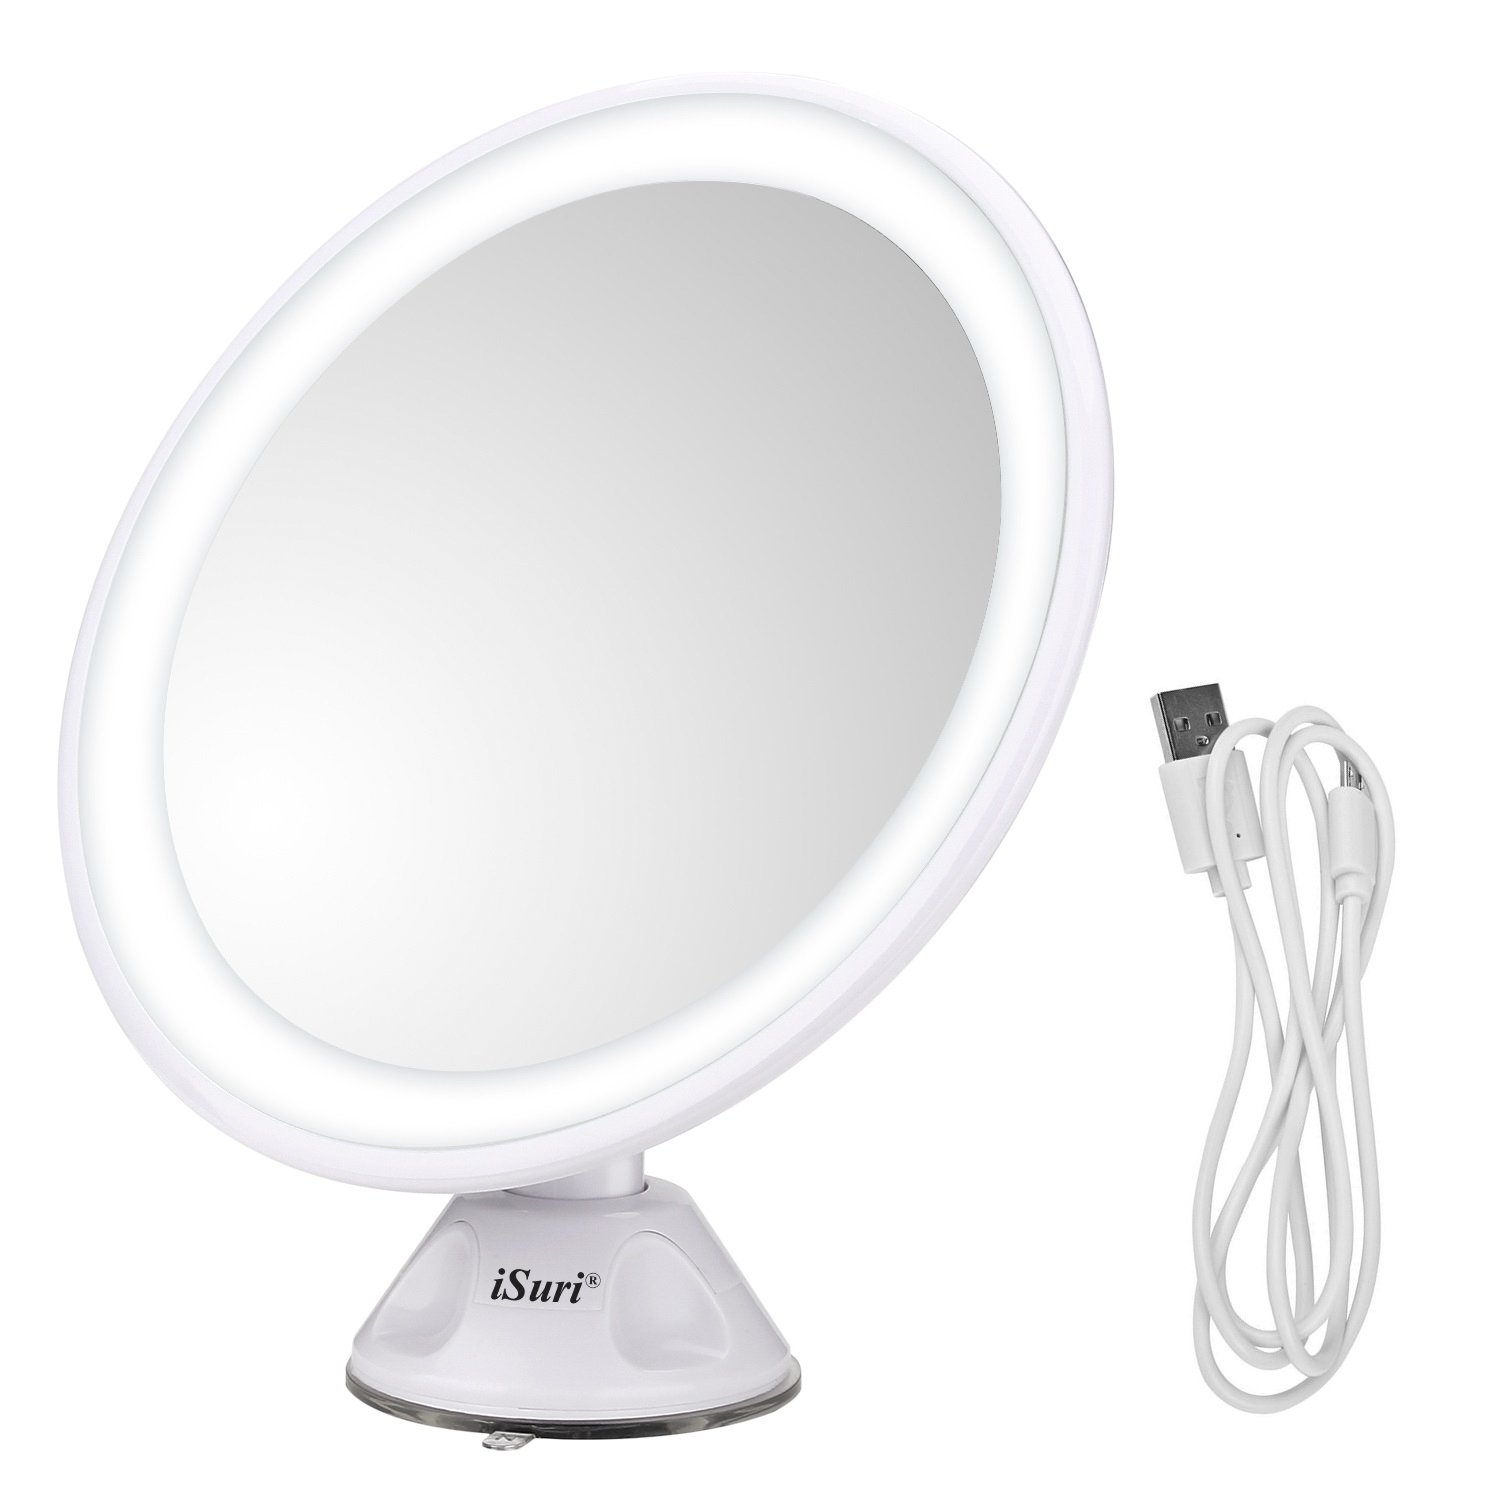 80% Off (code 4R2PEY25) - iSuri LED Lighted Makeup Mirror, Rechargeable LED Magnifying Vanity Makeup Mirror with Powerful Locking Suction, Bathroom Movable Mirror With USB Charged